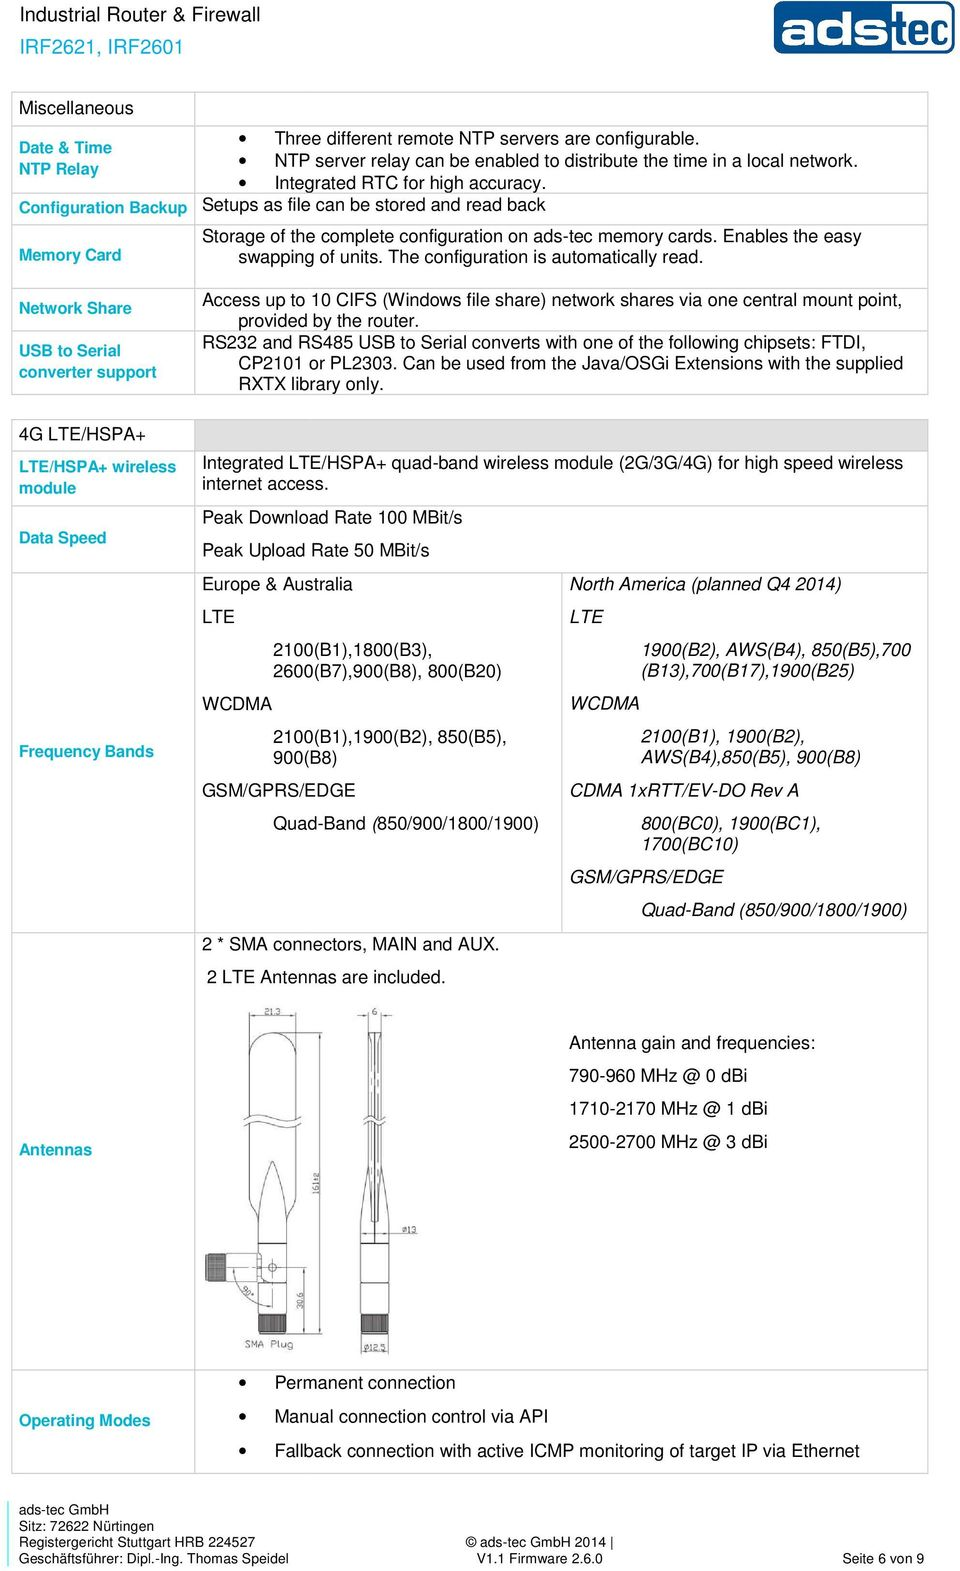 IRF2601, IRF Industrial Router & Firewall - PDF